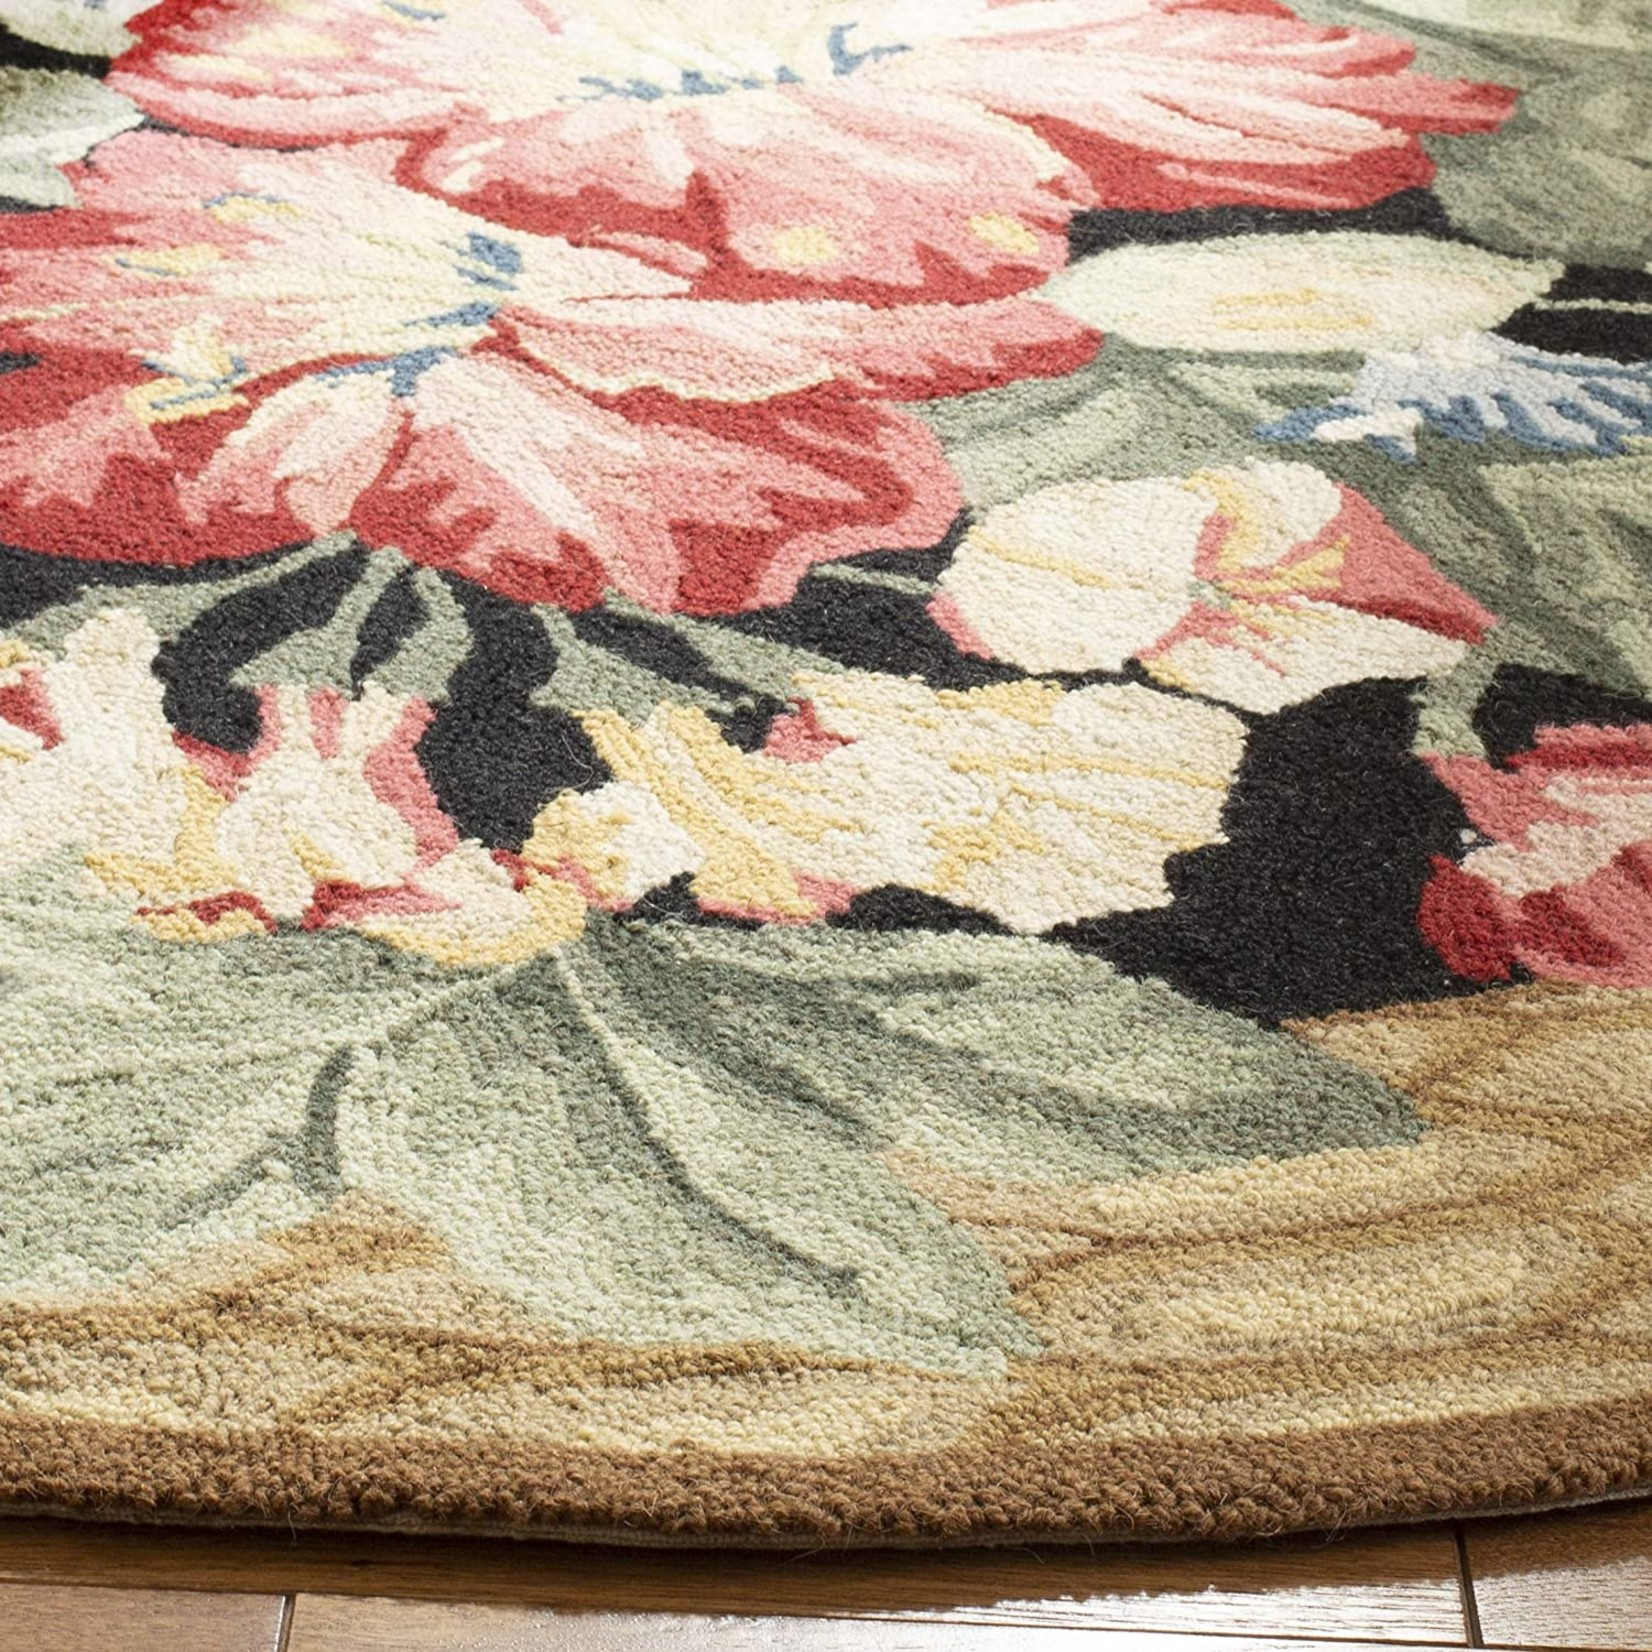 *7'6 x 9'6 Oval - Chelsea Floral Hand Hooked Wool Brown/Black Area Rug